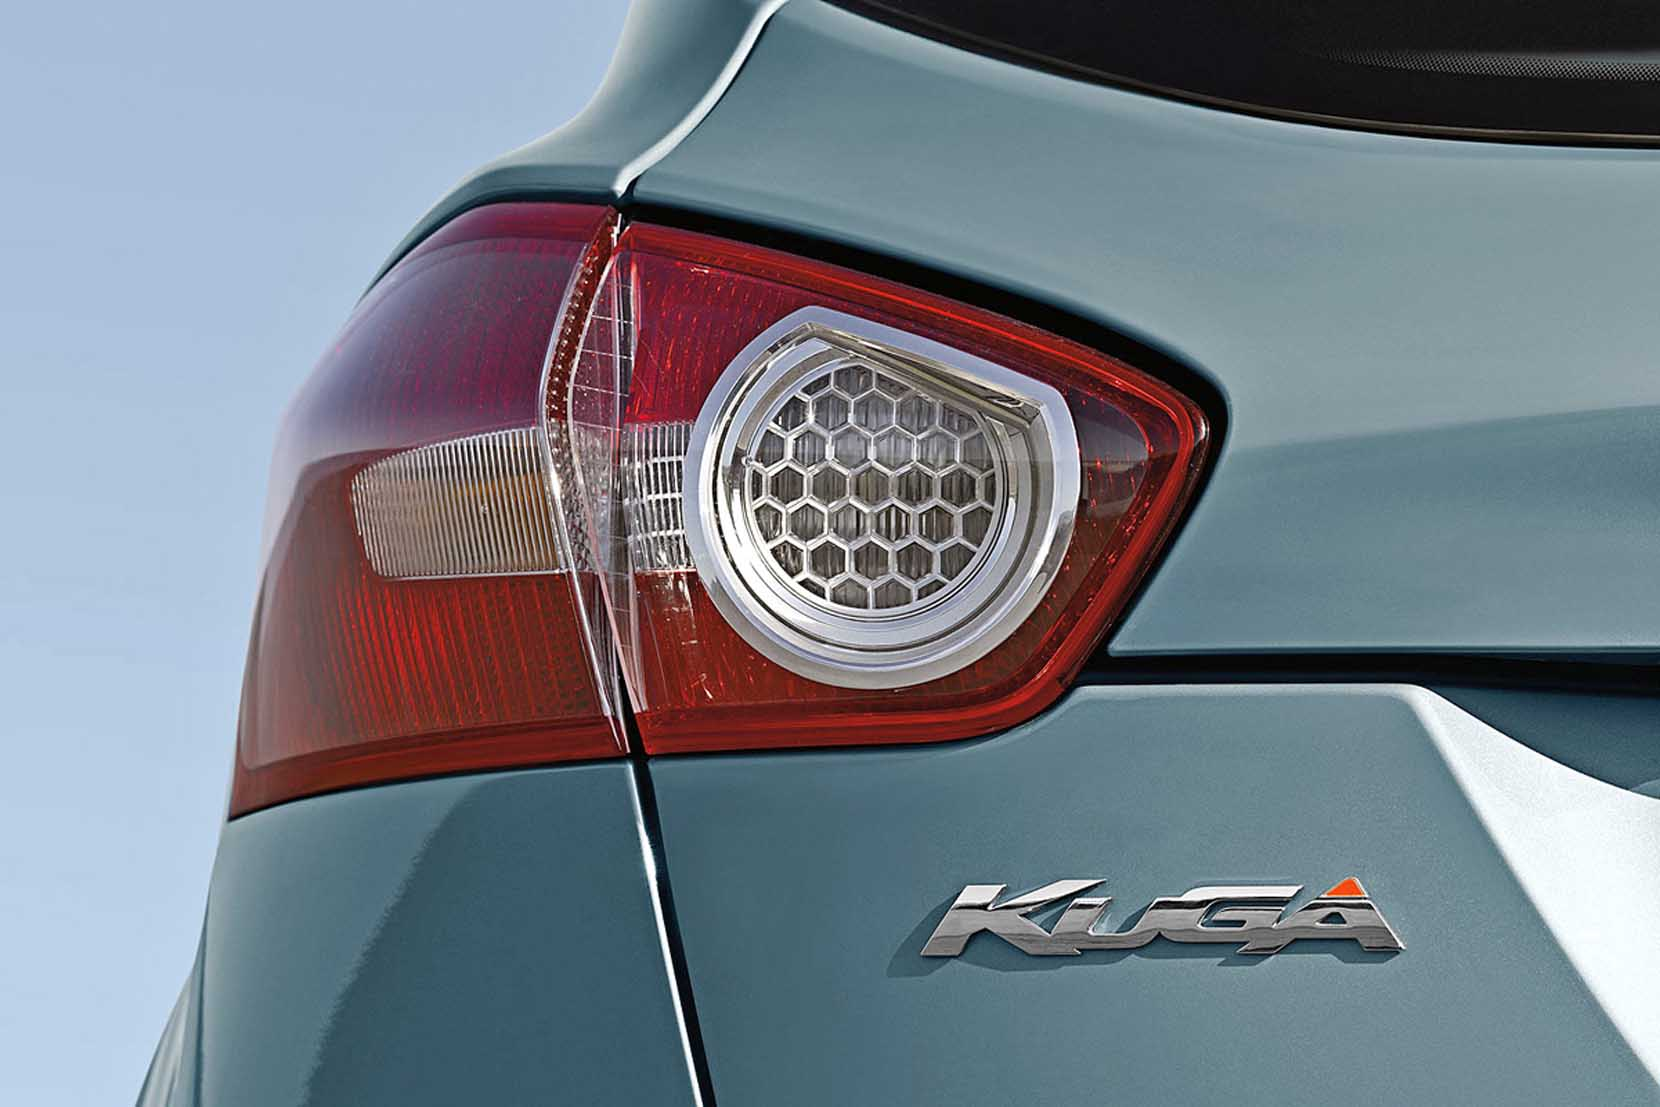 Exterieur_Ford-Kuga_0